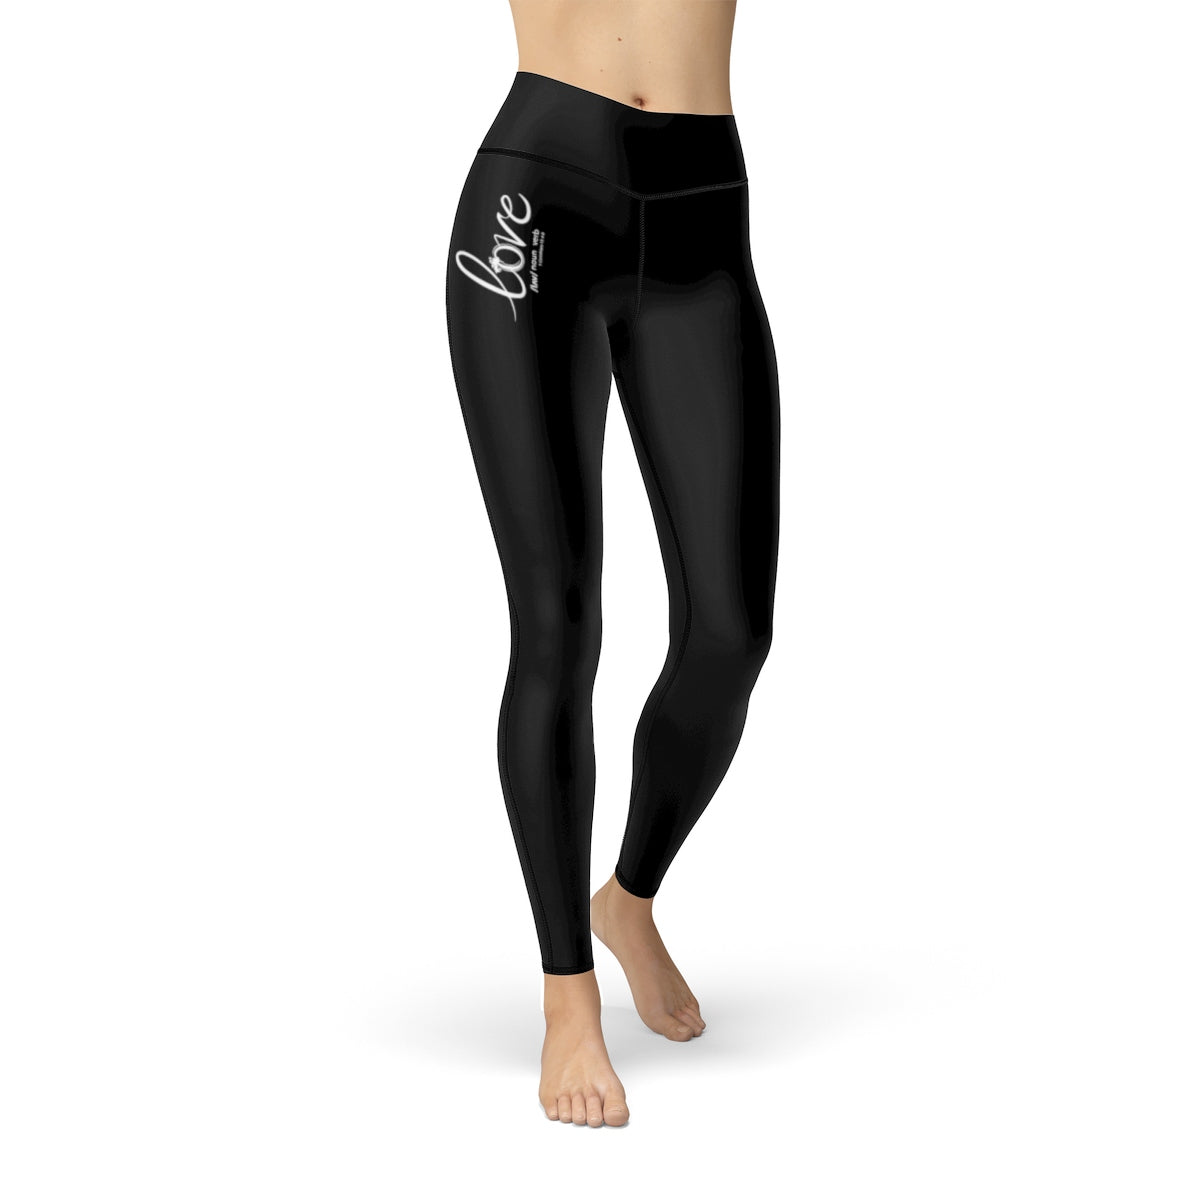 Odyssey Women's Love Sport Leggings - Black